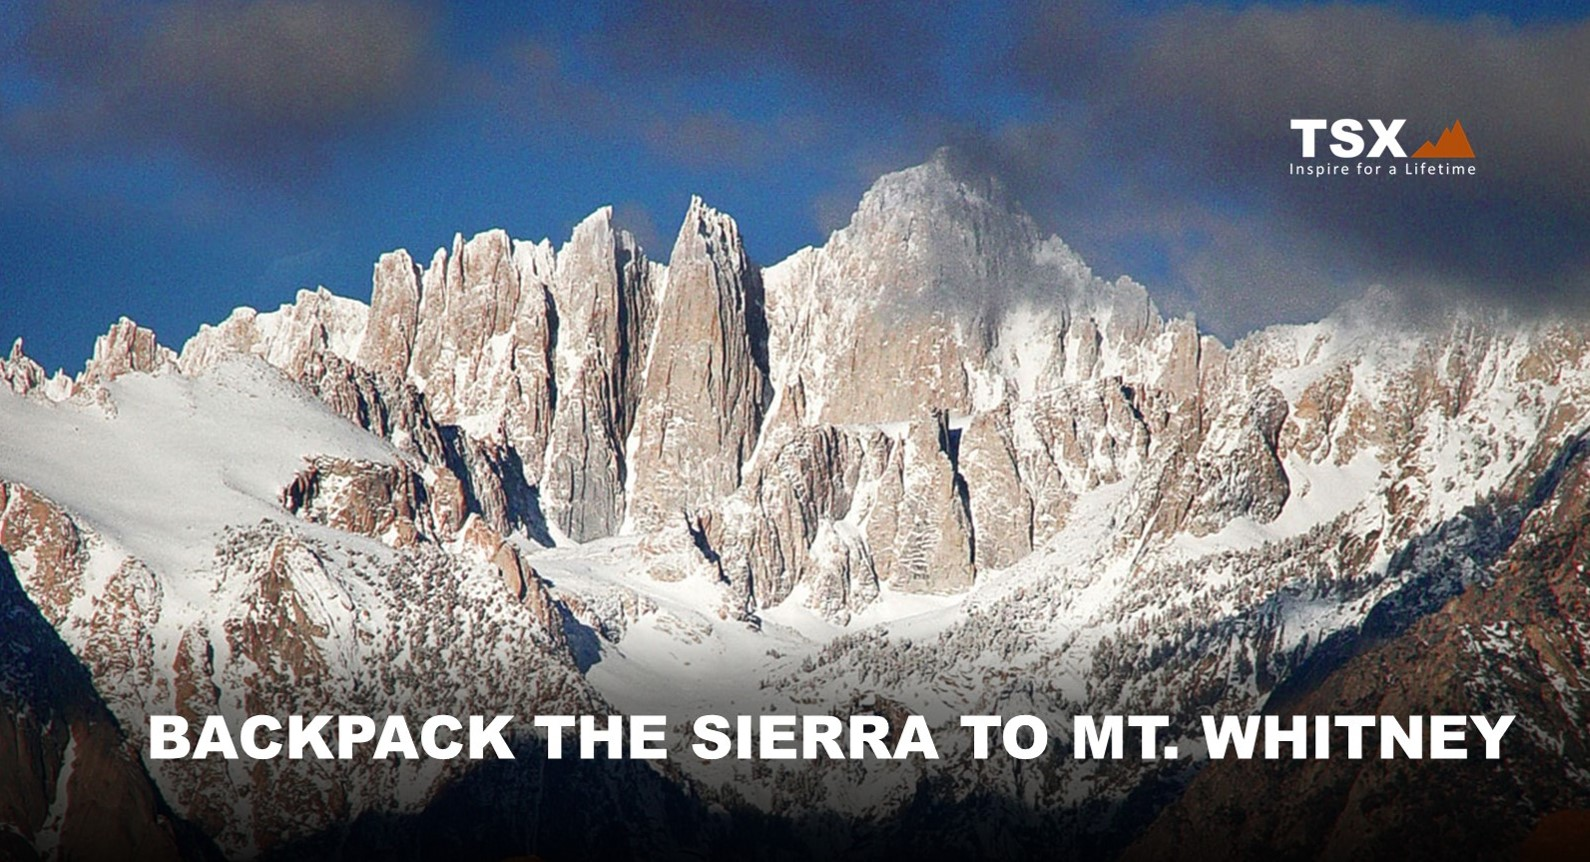 Co Founder Of The Trans Sierra Xtreme TSX Challenge Chris Casado Is Passionate About Exploring Backcountry Hes Spent Countless Summers